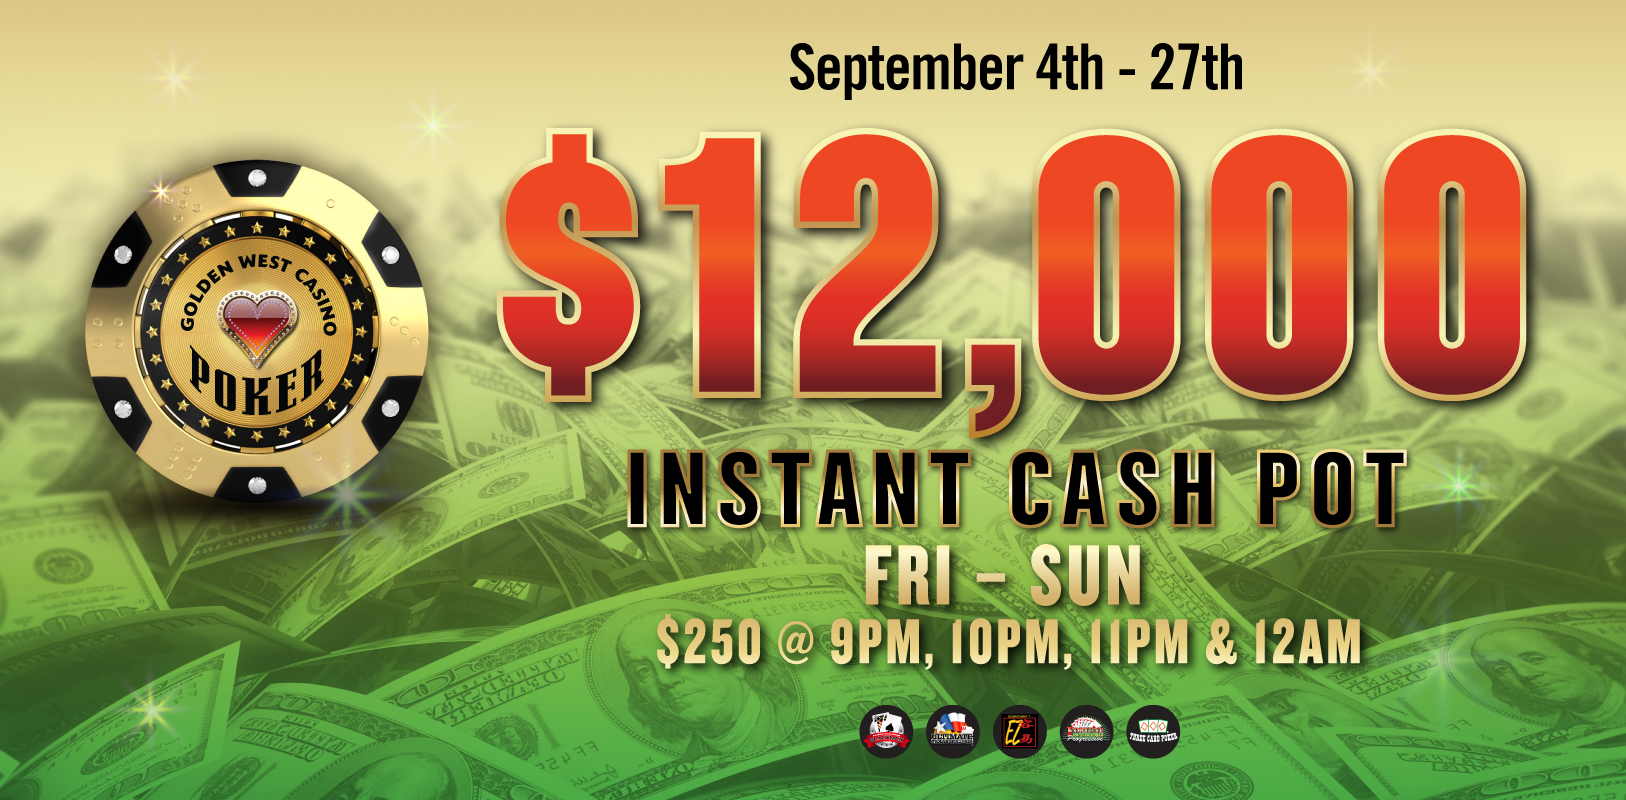 $12K Instant Cash Pot Sep. 4th-27th $250 @9pm, 10pm, 11pm & 12am